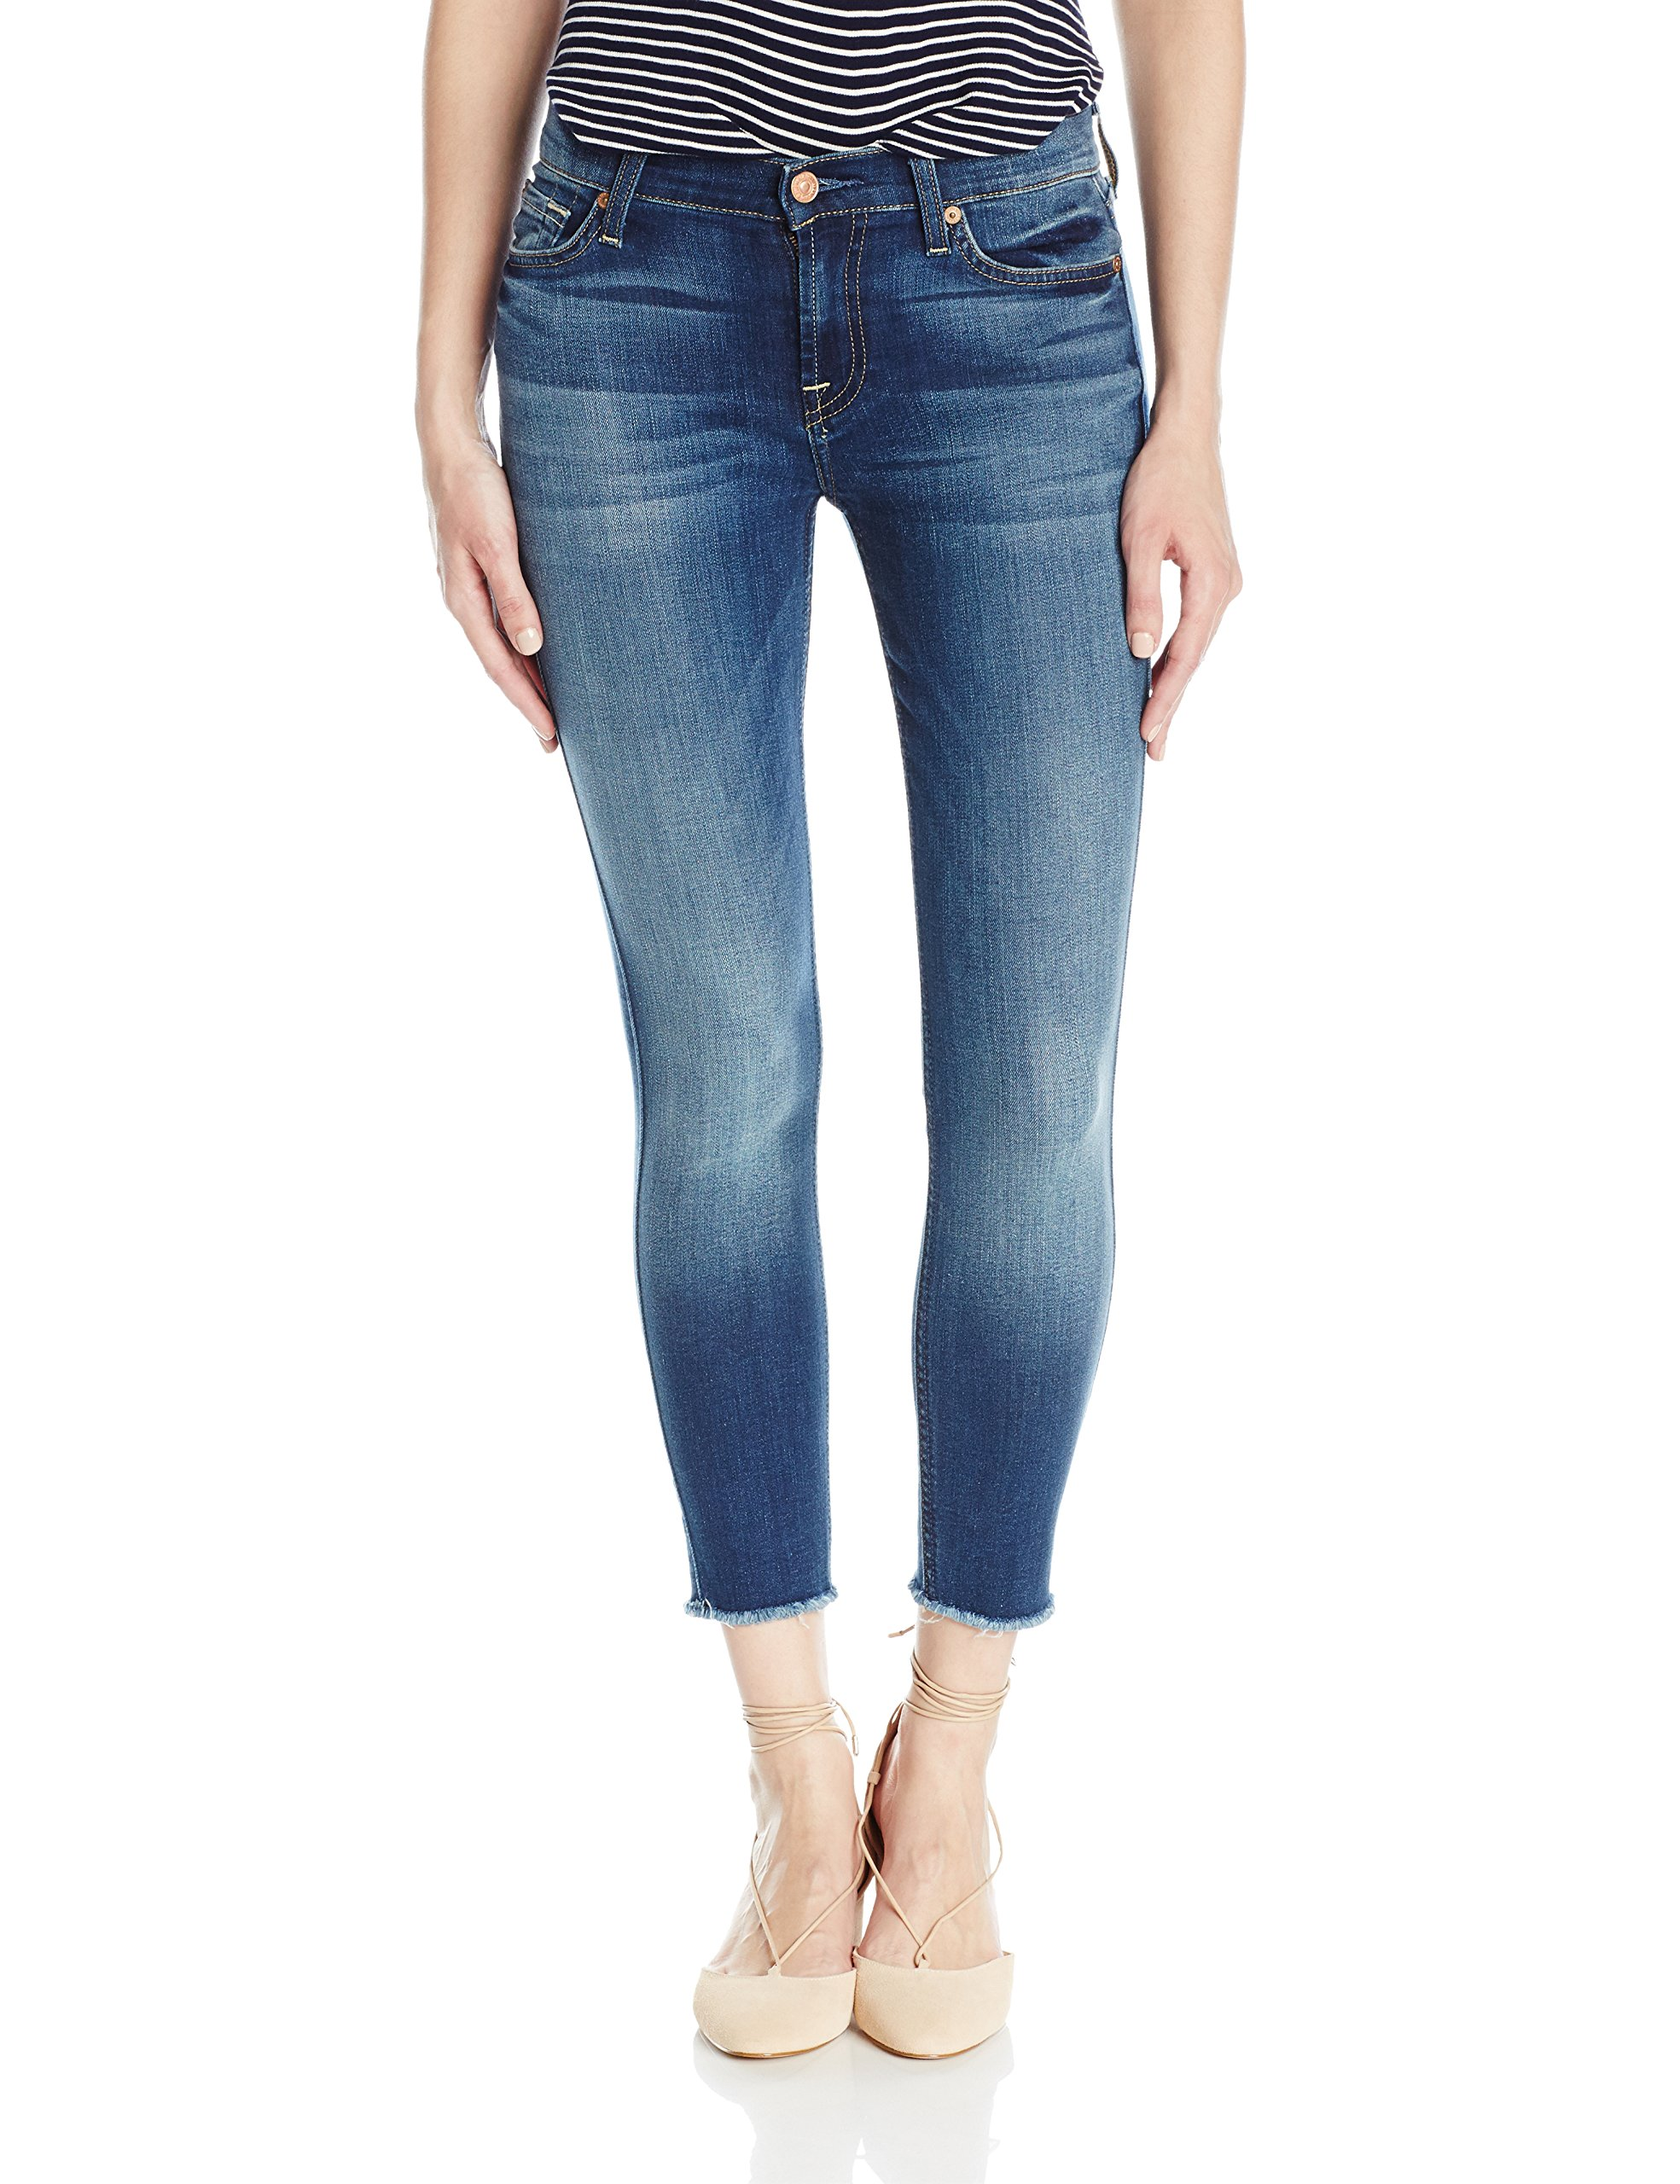 7 For All Mankind Women's Ankle Skinny Mid Rise